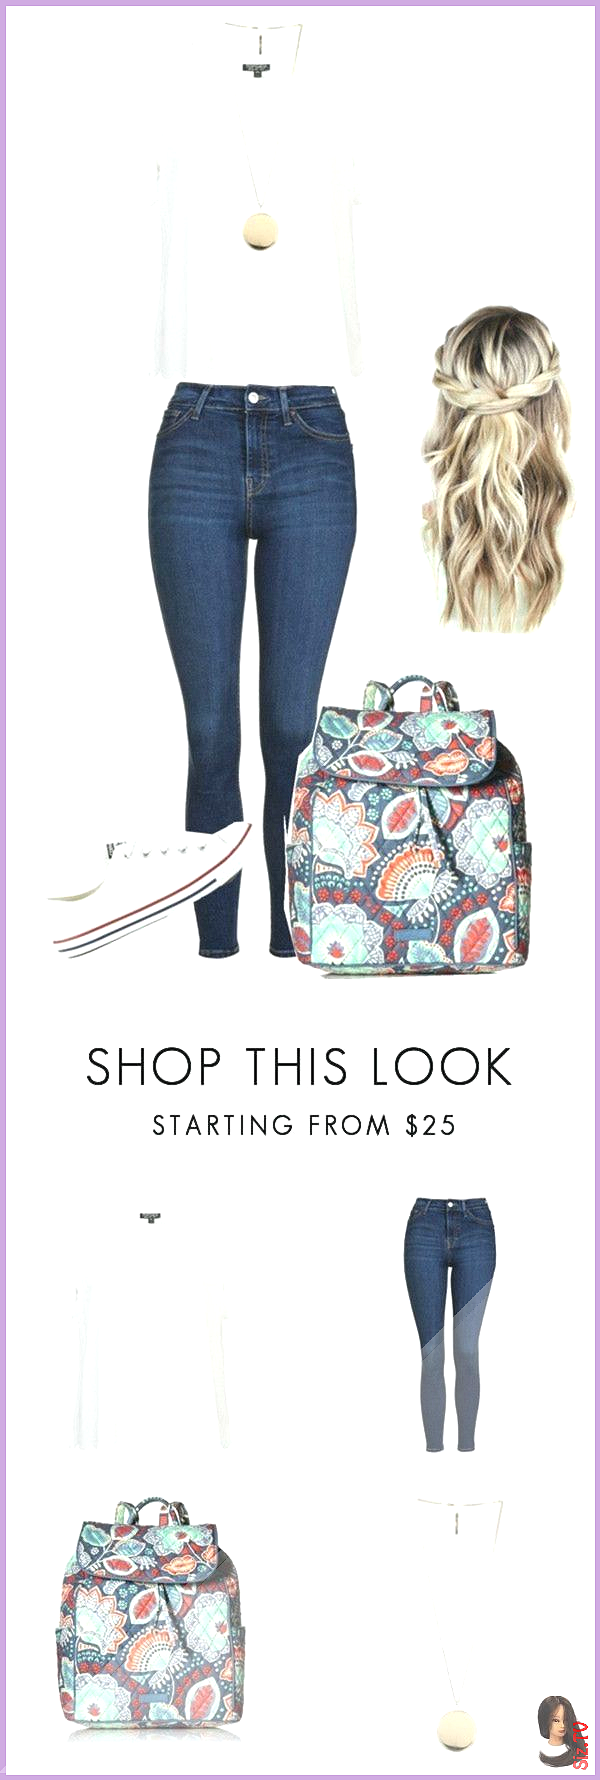 averymsmith Back To School Outfit highschool day Outfit School first day of scho...  #averymsmith #Day #highschool #outfit #Scho   Informations About averymsmith Back To School Outfit highschool day Outfit School first day of scho... Pin  You can easily use my profile to examine different pin types. averymsmith Back To School Outfit highschool day Outfit School first day of scho... pins are as aesthetic and useful as you can... #Beach Outfit Beachwear #Beach Outfit Curvy #Beach Outfit Women